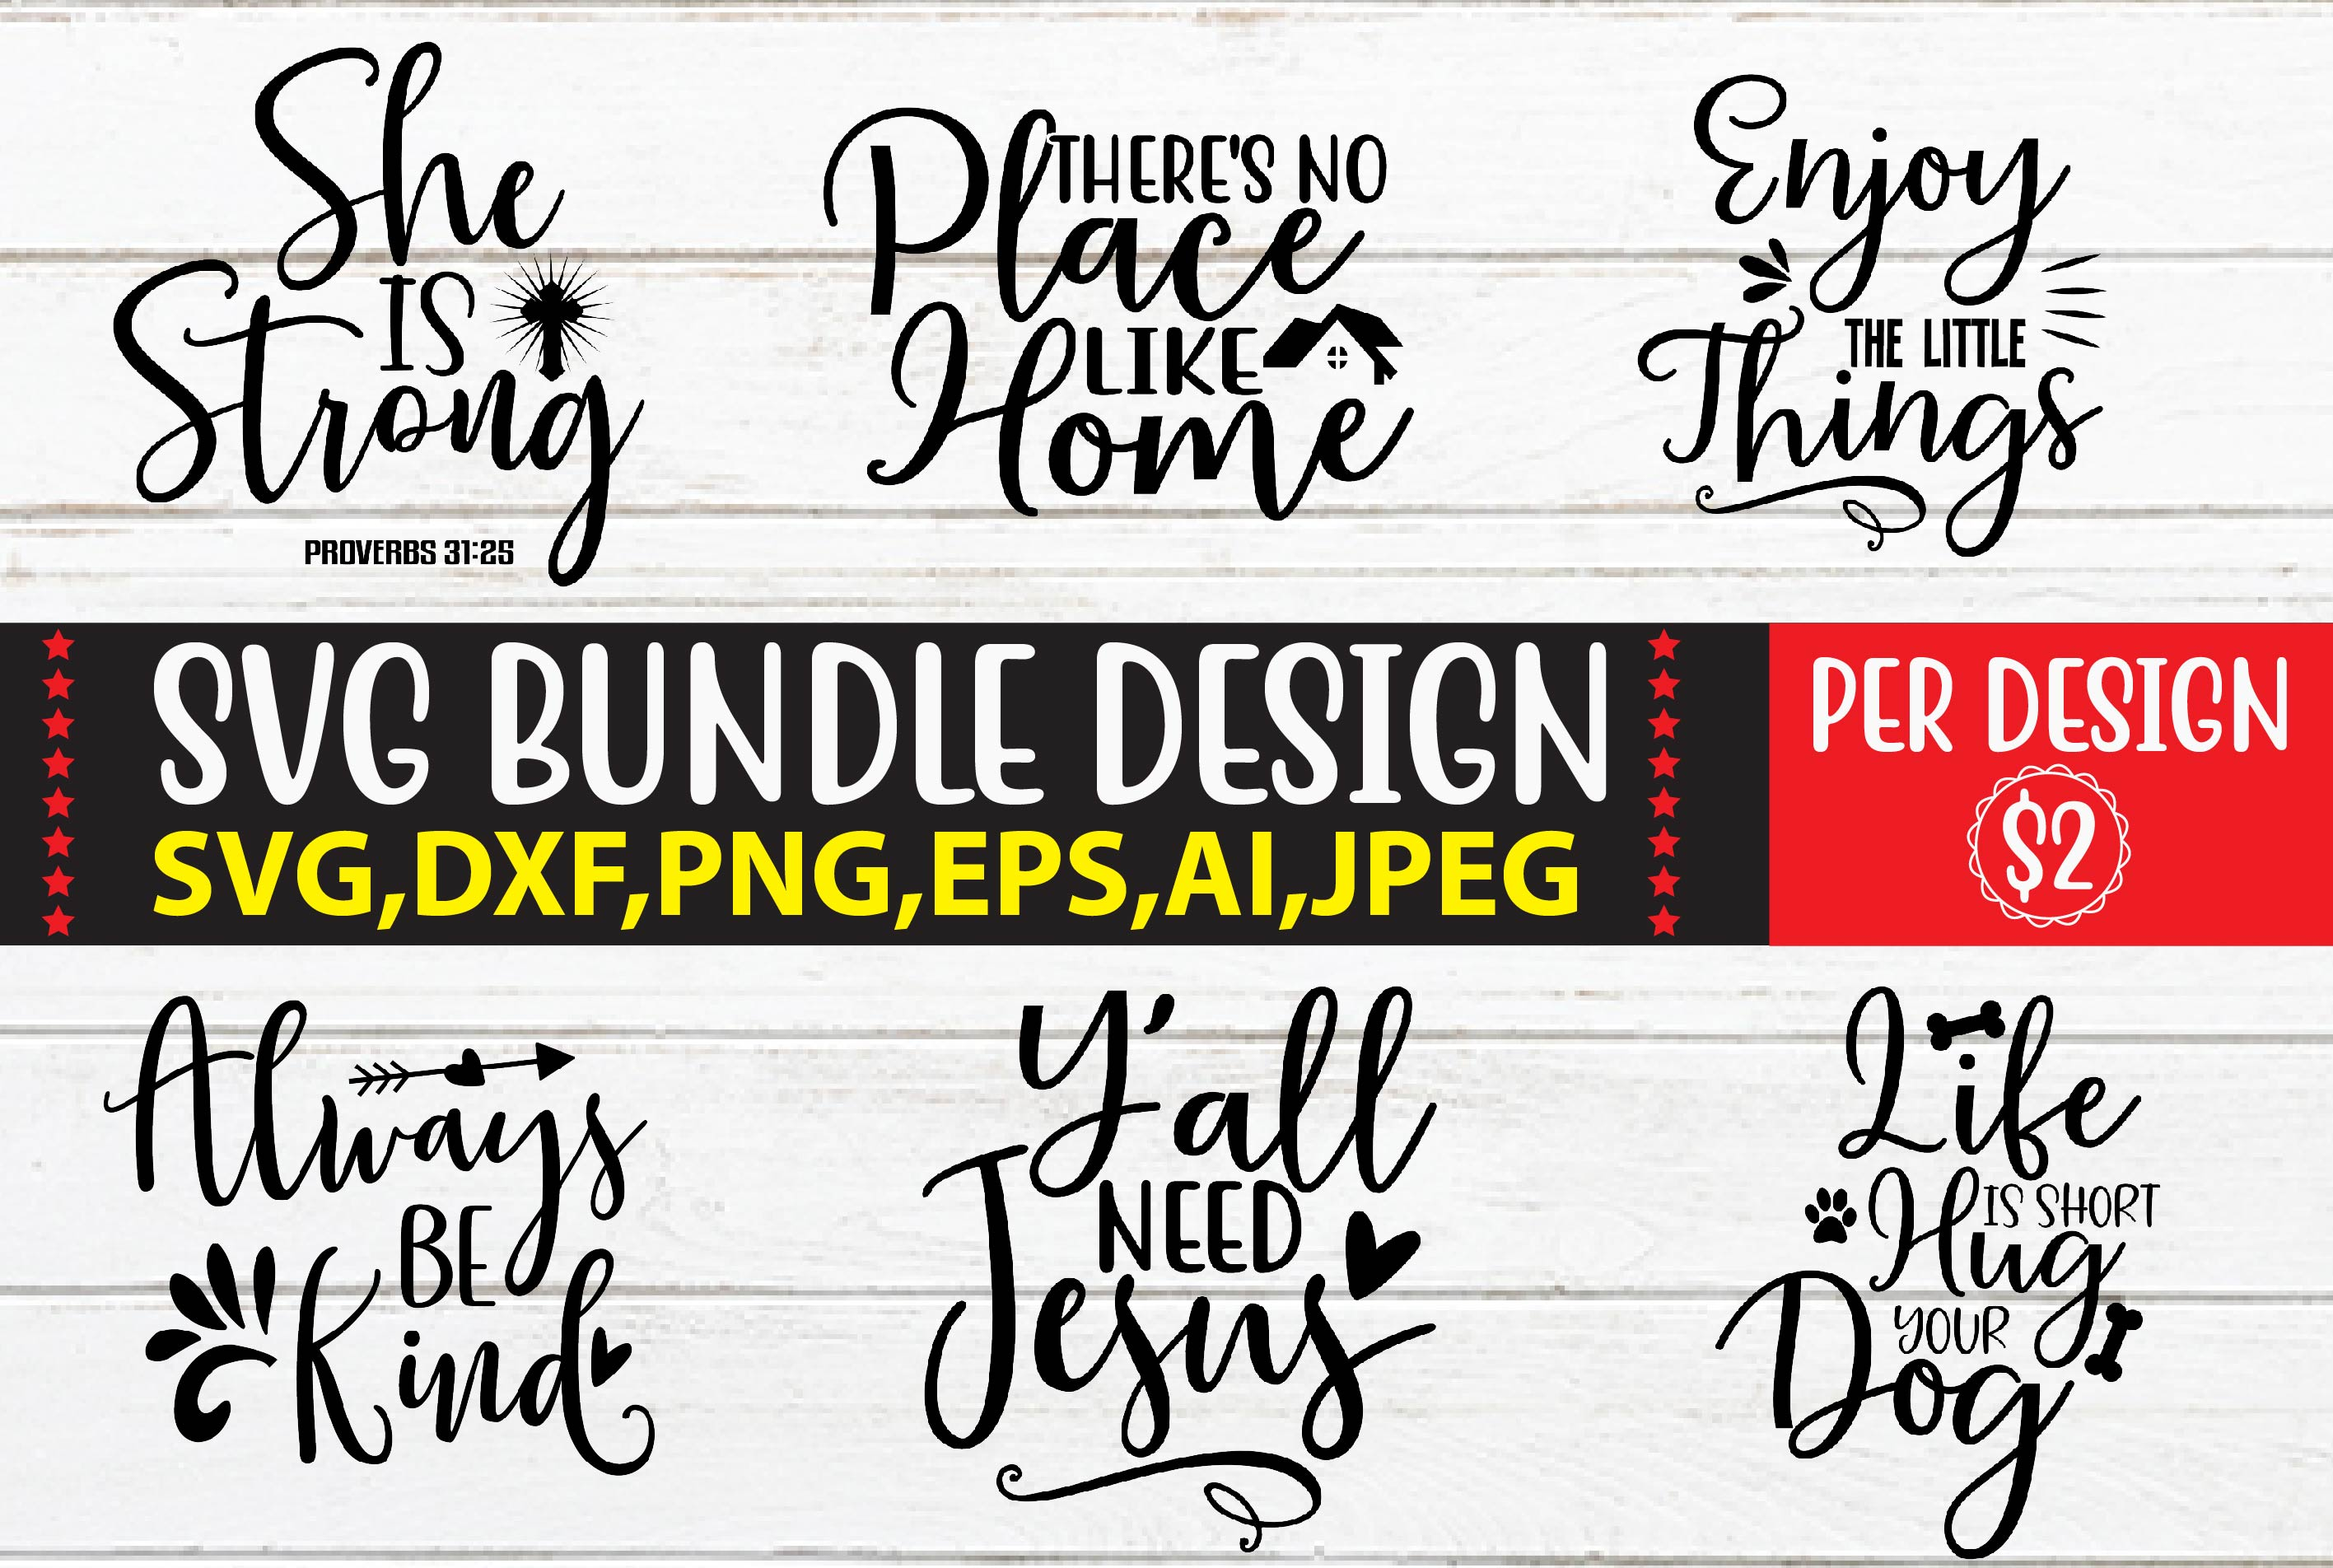 I will provide svg cut files for cricut design with svg,dxf,png,eps,ai files